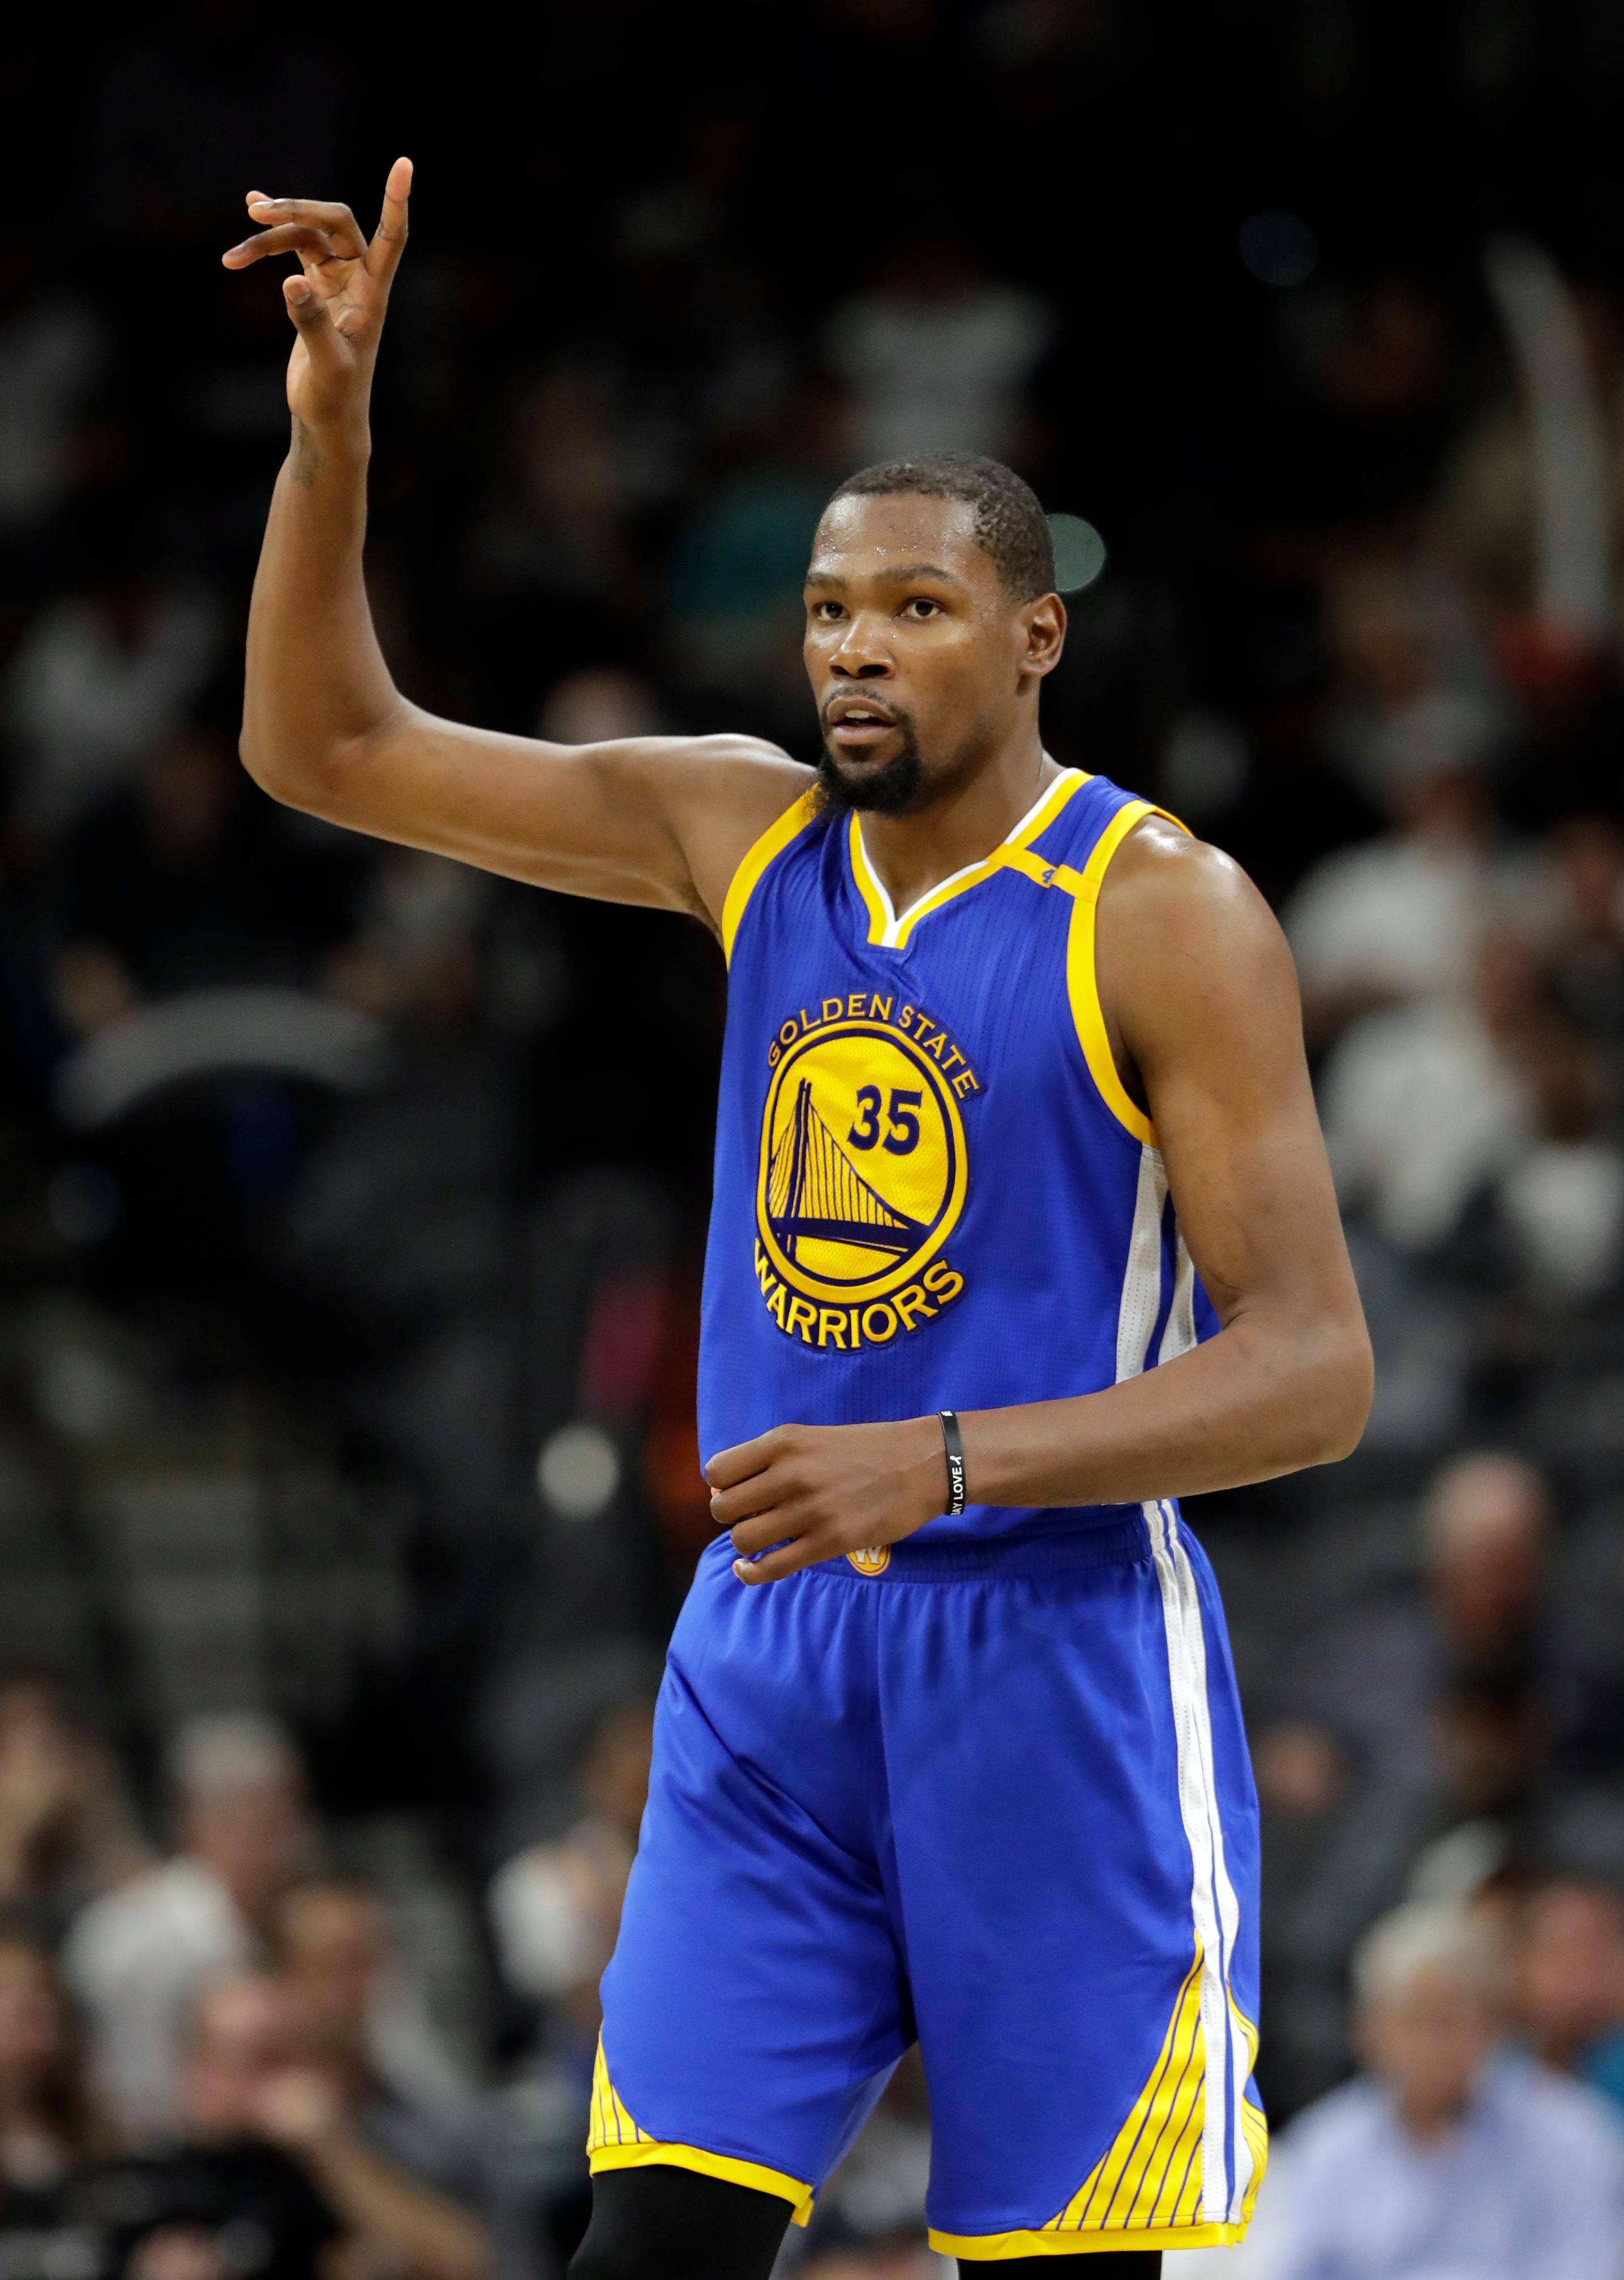 Golden State Warriors' Kevin Durant (35) celebrates a basket against the San Antonio Spurs during the second half in Game 4 of the NBA basketball Western Conference finals, Monday, May 22, 2017, in San Antonio. (AP Photo/Eric Gay)